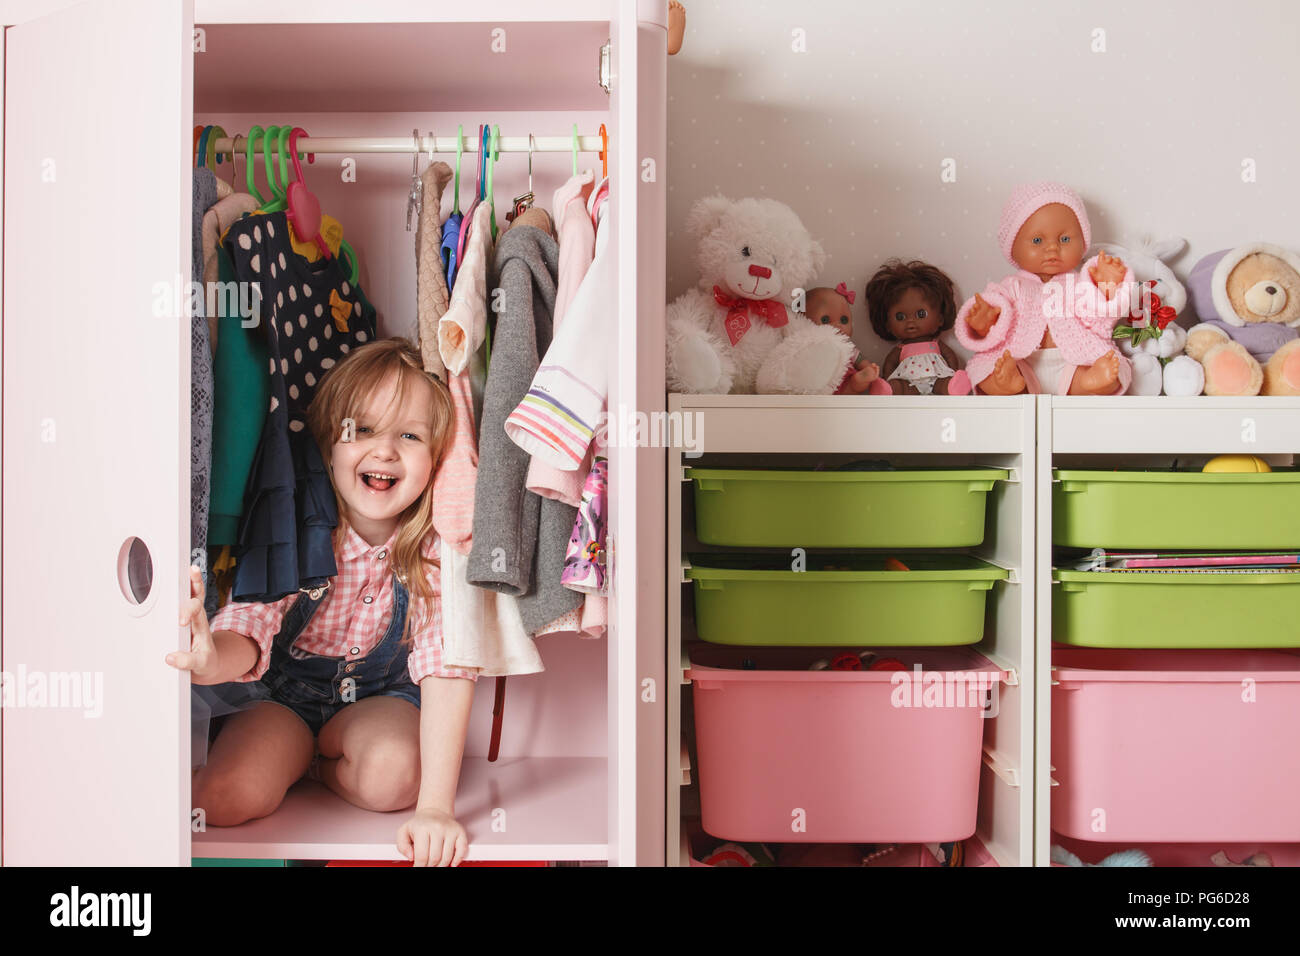 A little girl is sitting in a wardrobe with a children's department. Storage system for children's things Stock Photo